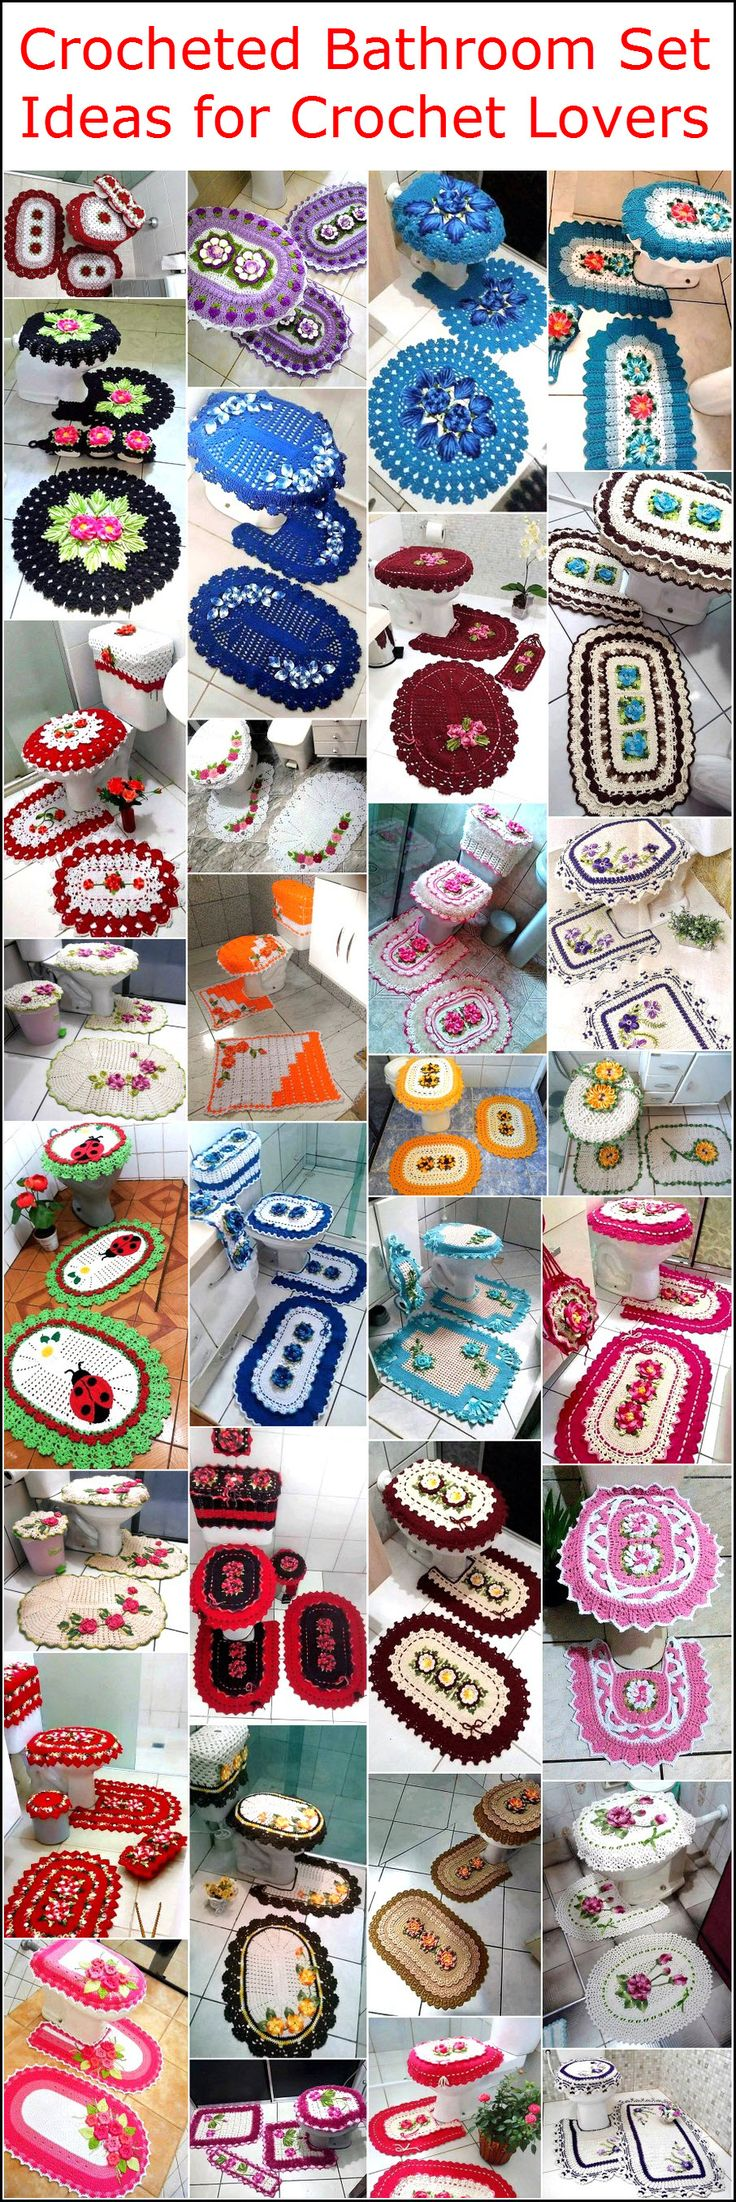 Crochet art is evergreen and it can never become out of fashion. You can make tremendous intricate household items and decorative accessories from Crochet. While there are plenty of ideas of creating various accessories with Crochet, we present to you awesome and unique designs of Crocheted bathroom sets. These bathroom sets are not only meant to increase the beauty but they are a must have if you have expensive and luxury fittings and accessories in your bathroom. Go for them if you want…